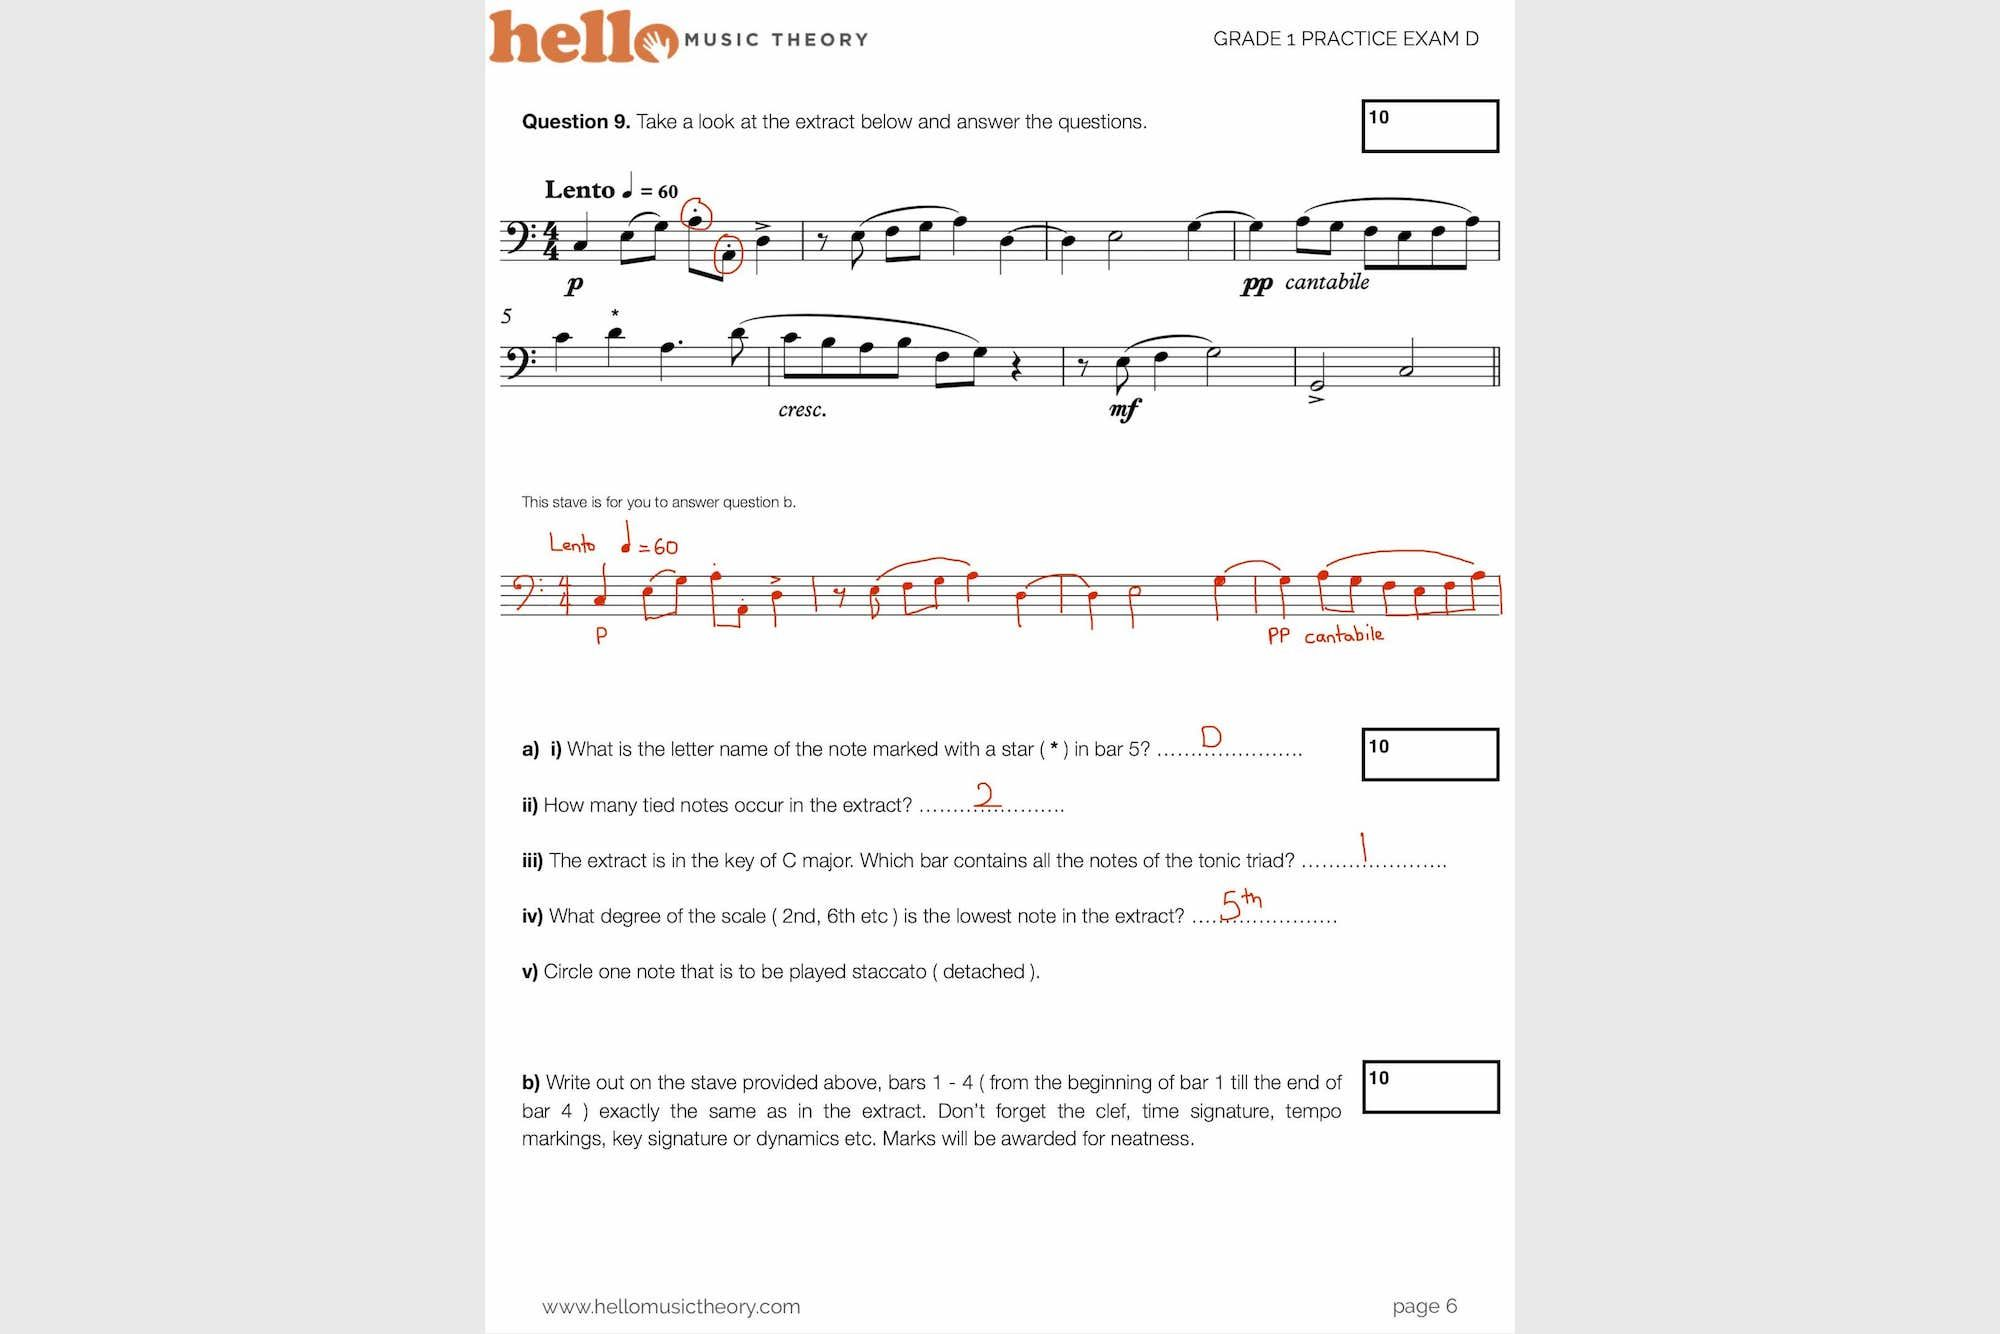 Pin By Hello Music Theory On Grade 1 Music Theory Exams